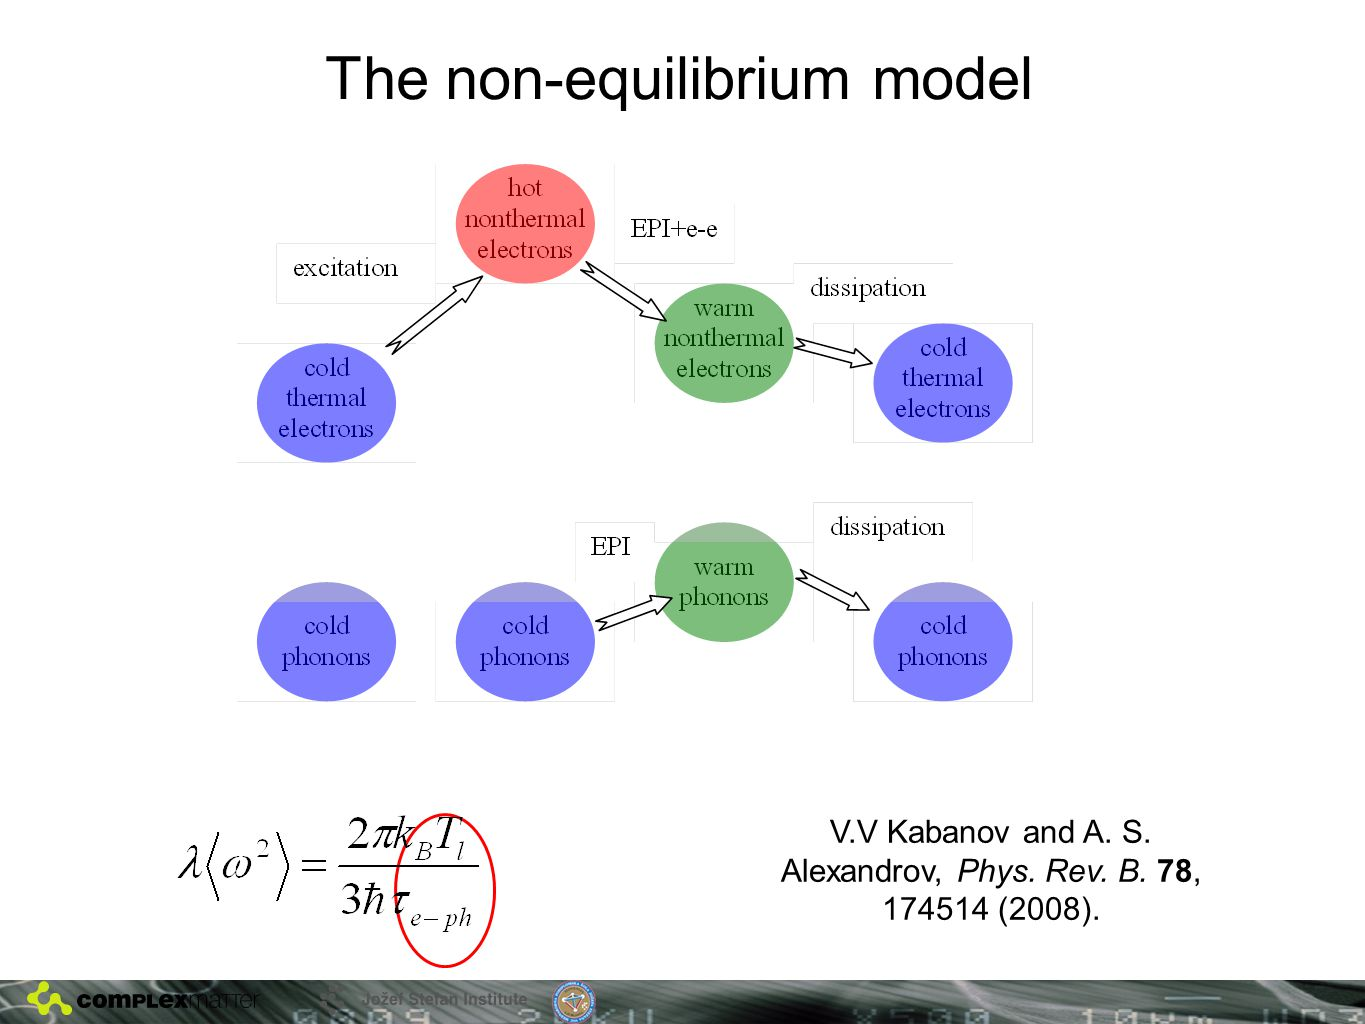 The non-equilibrium model V.V Kabanov and A. S. Alexandrov, Phys. Rev. B. 78, 174514 (2008).